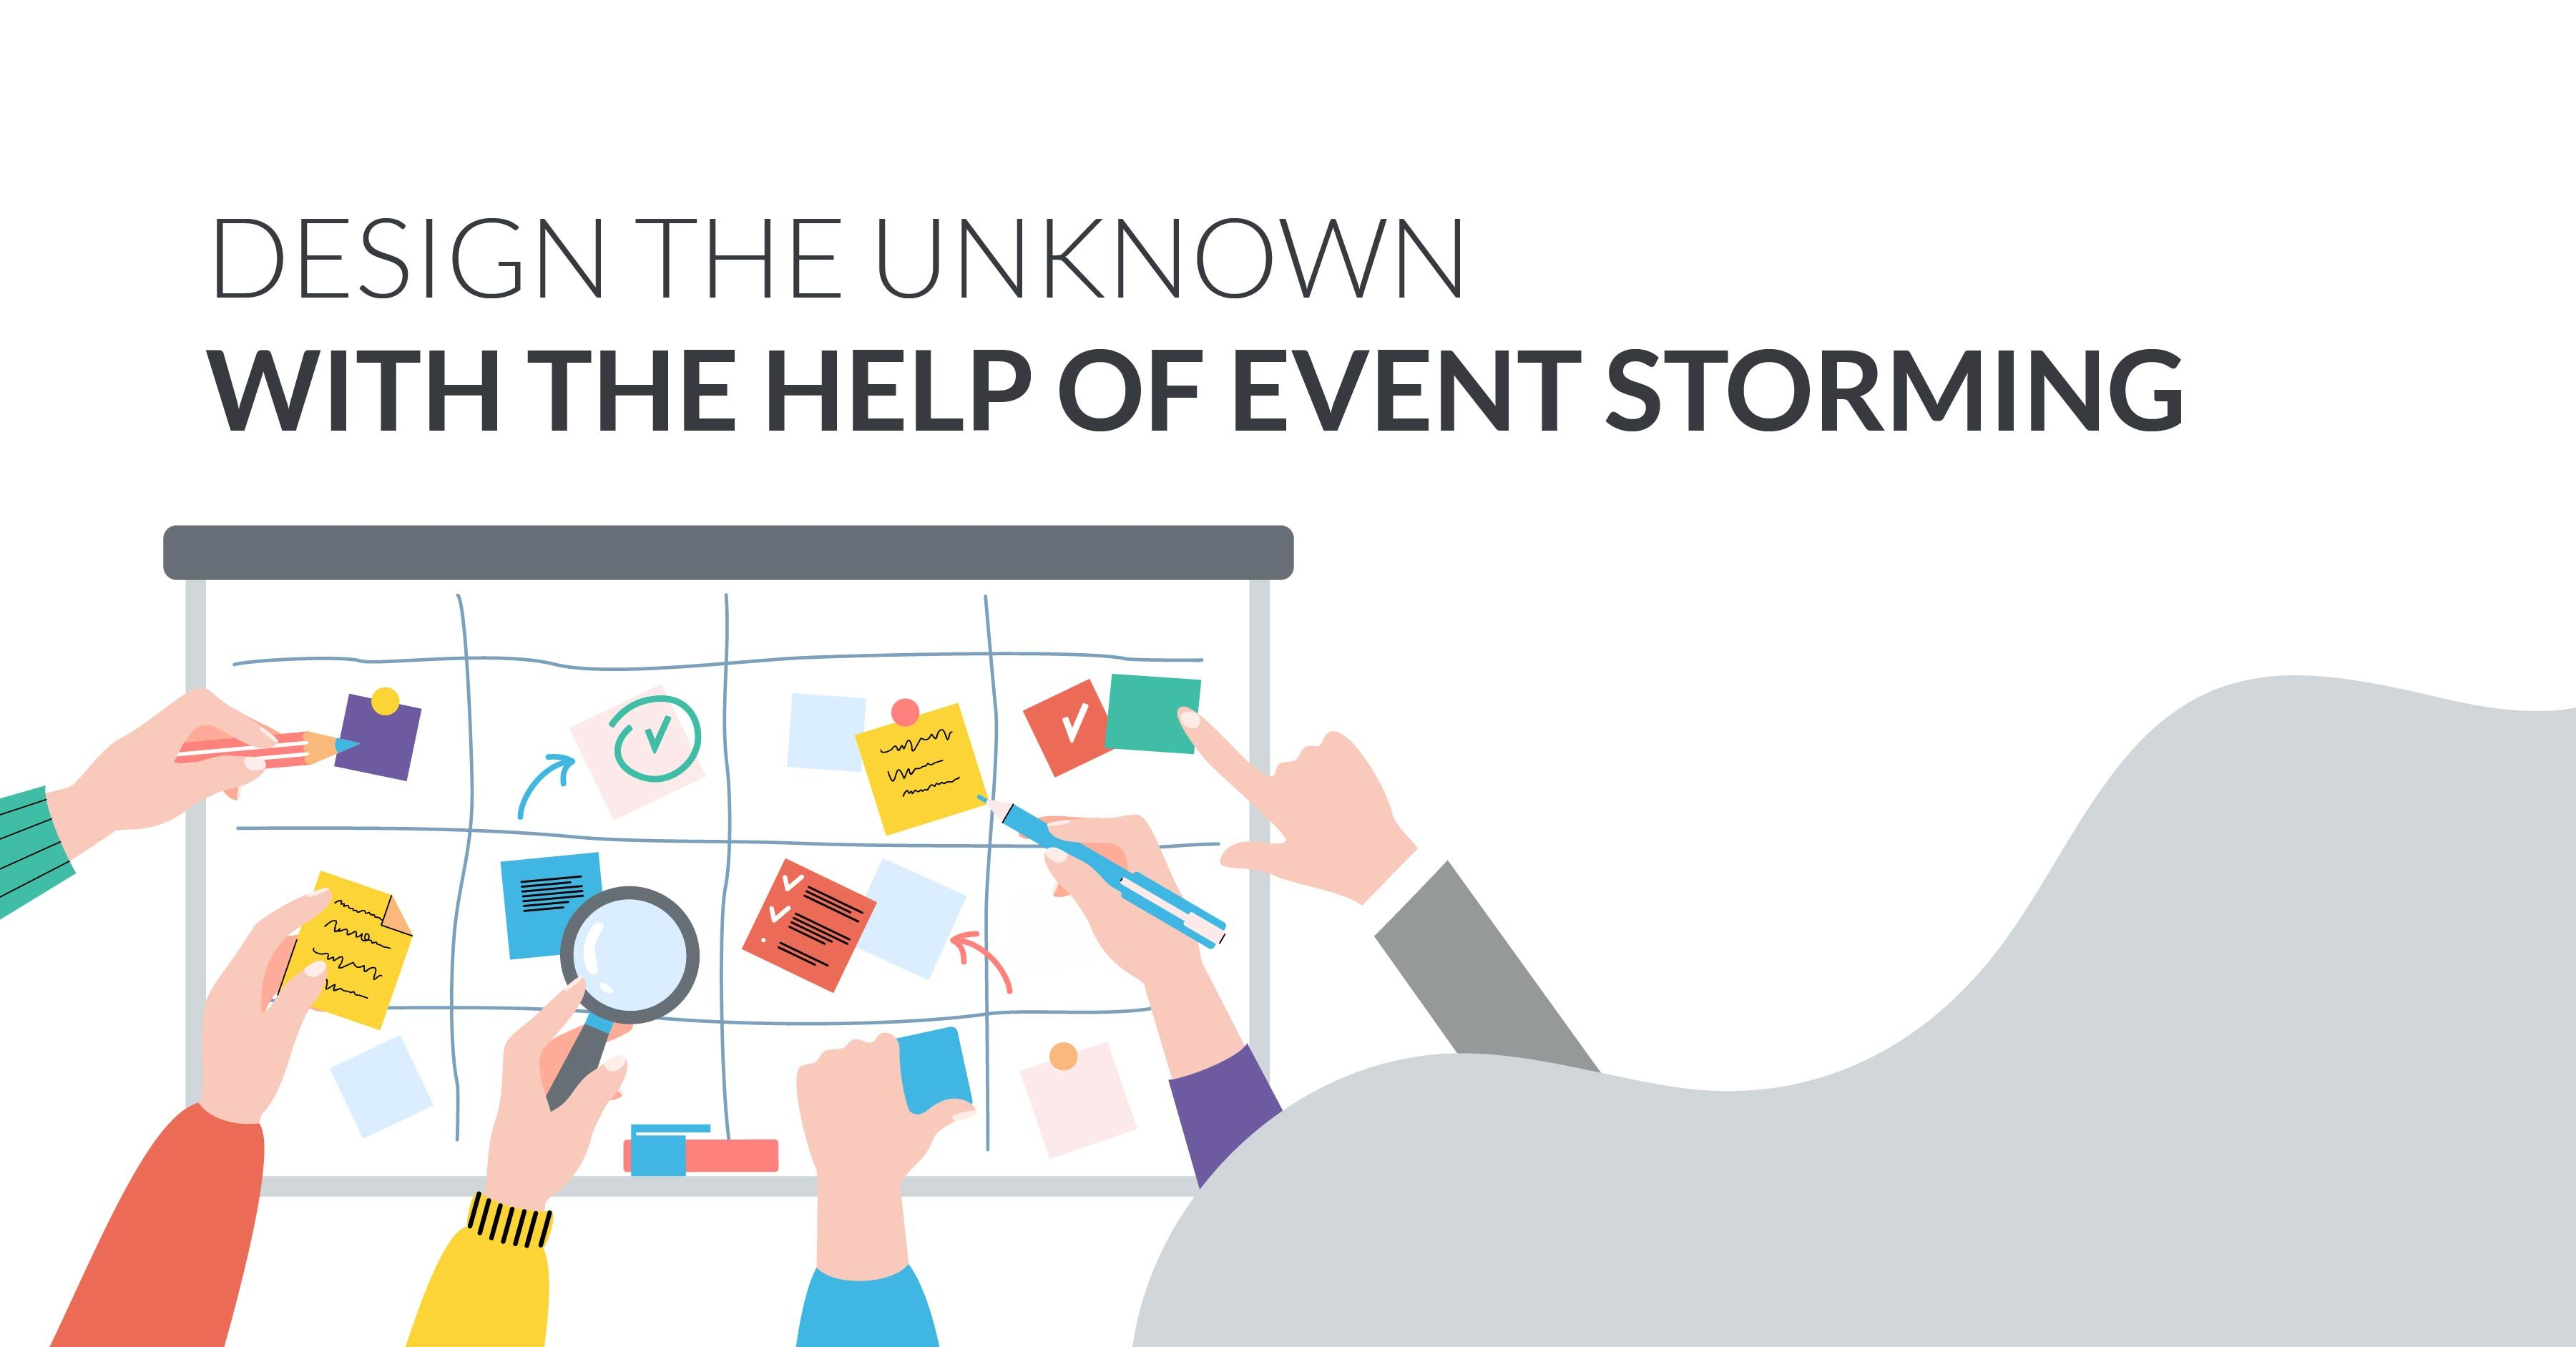 Design the unknown (with the help of Event Storming)